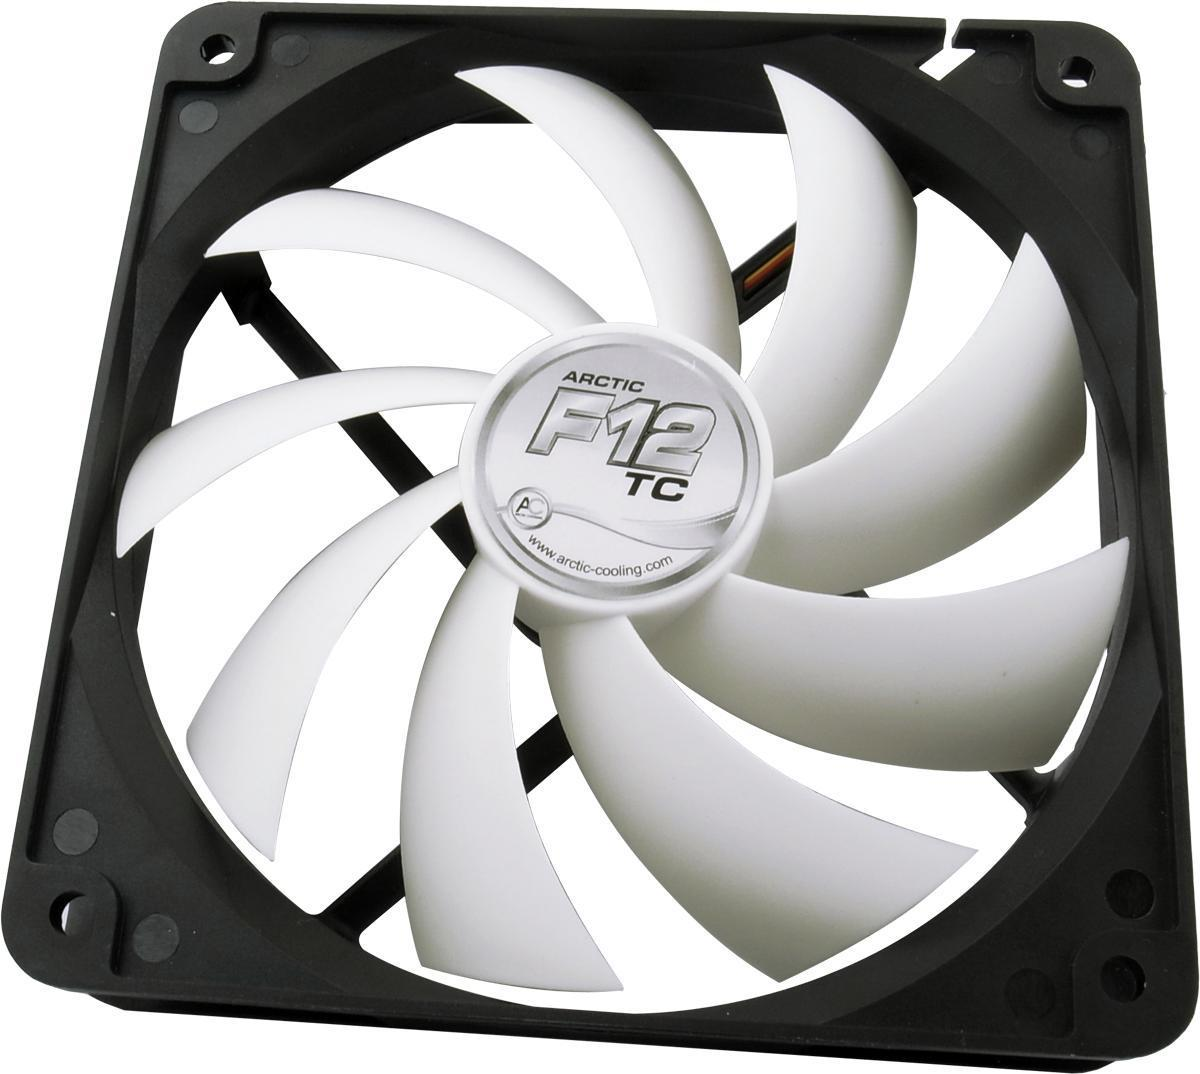 Arctic Cooling Arctic Fan F12 TC - 120mm/300-1350rpm